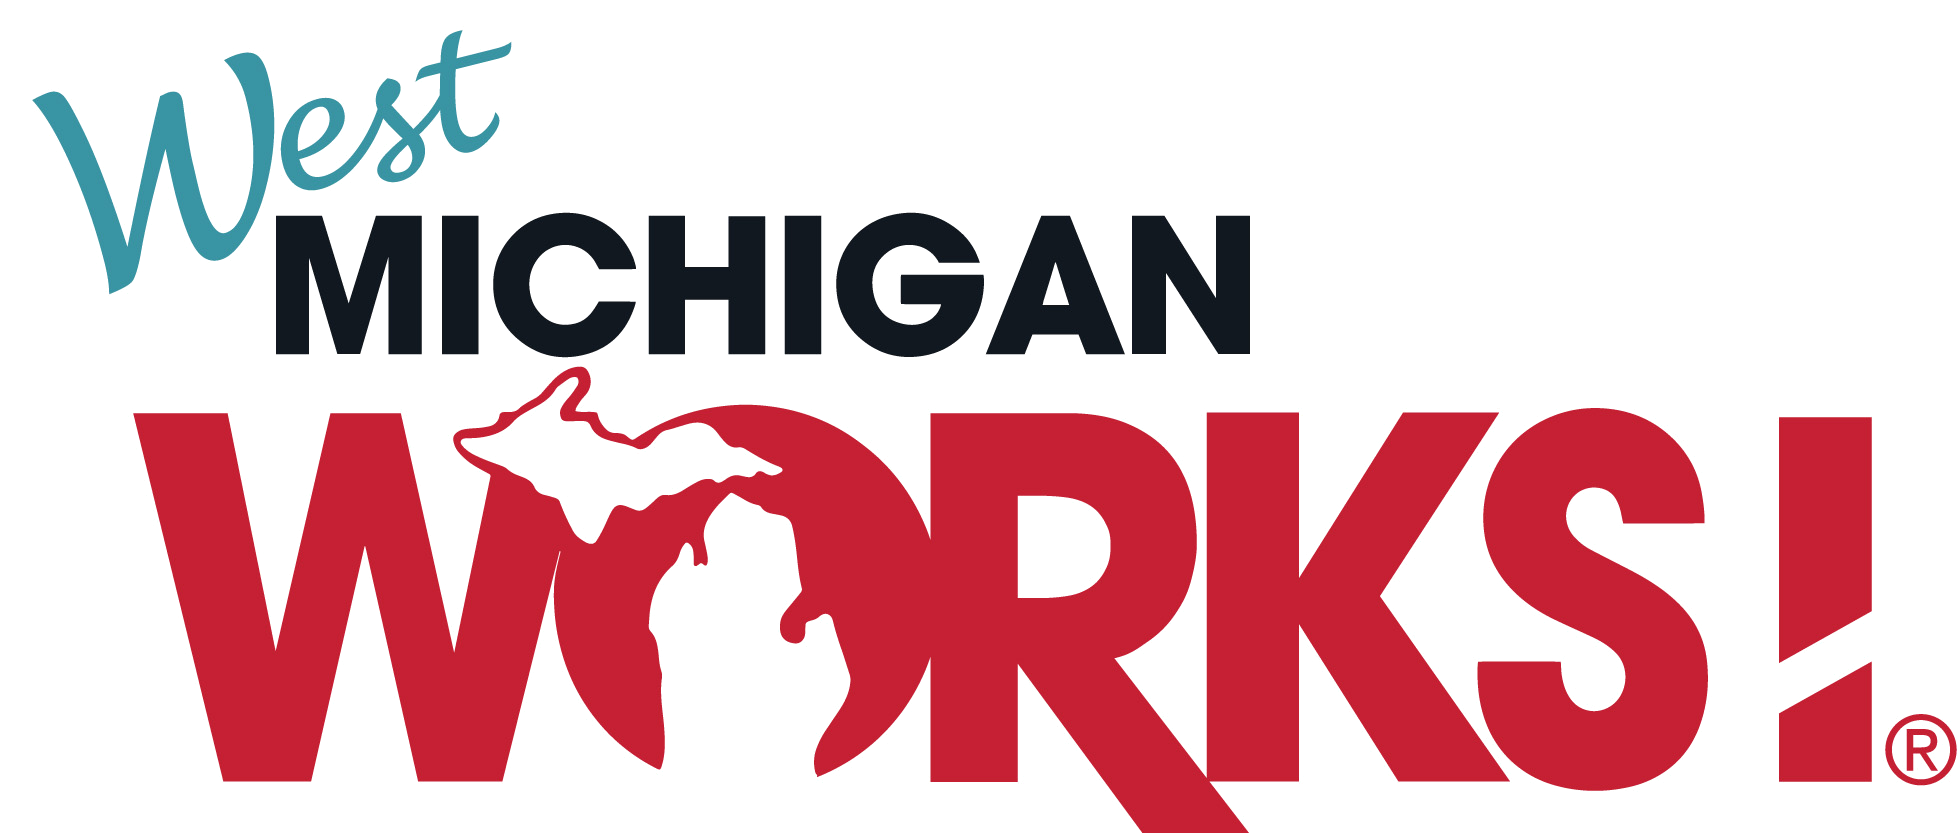 West Michigan Works logo